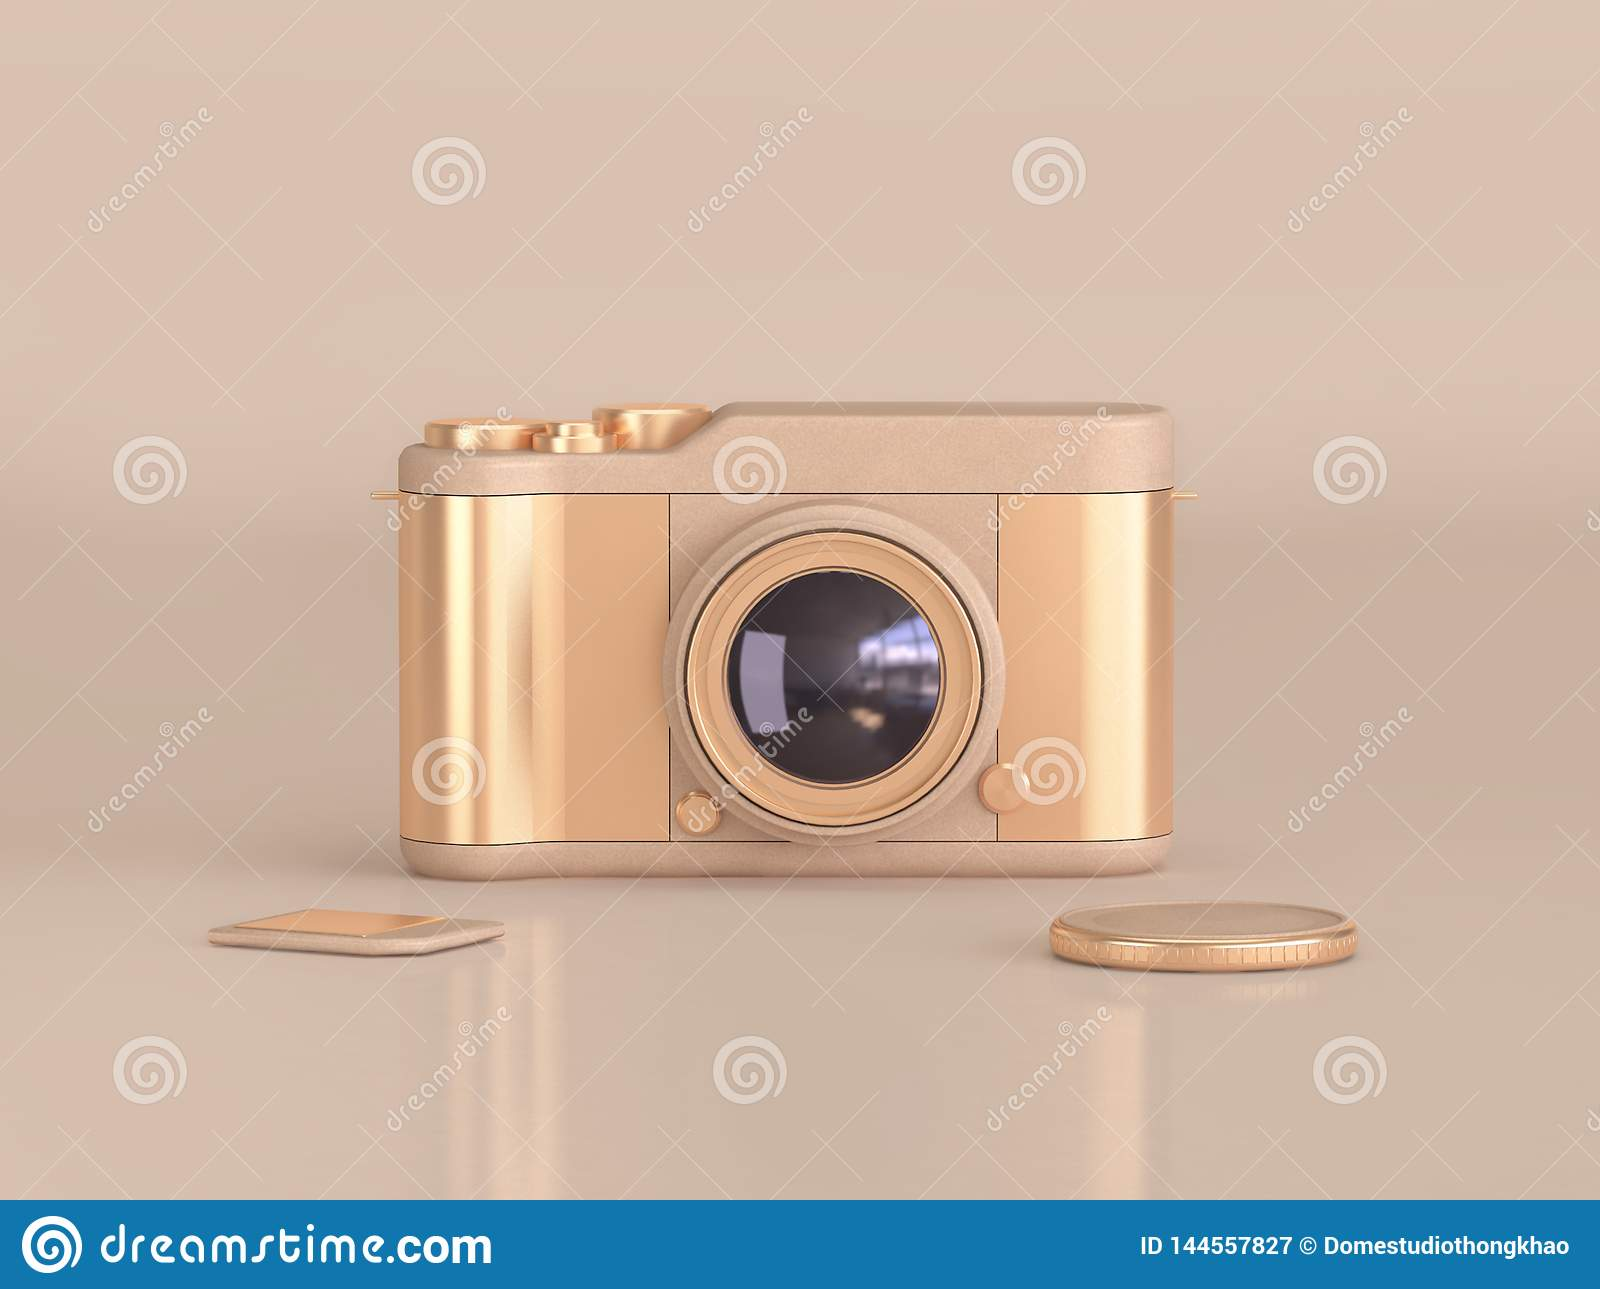 Gold camera on cream floor reflection 3d render